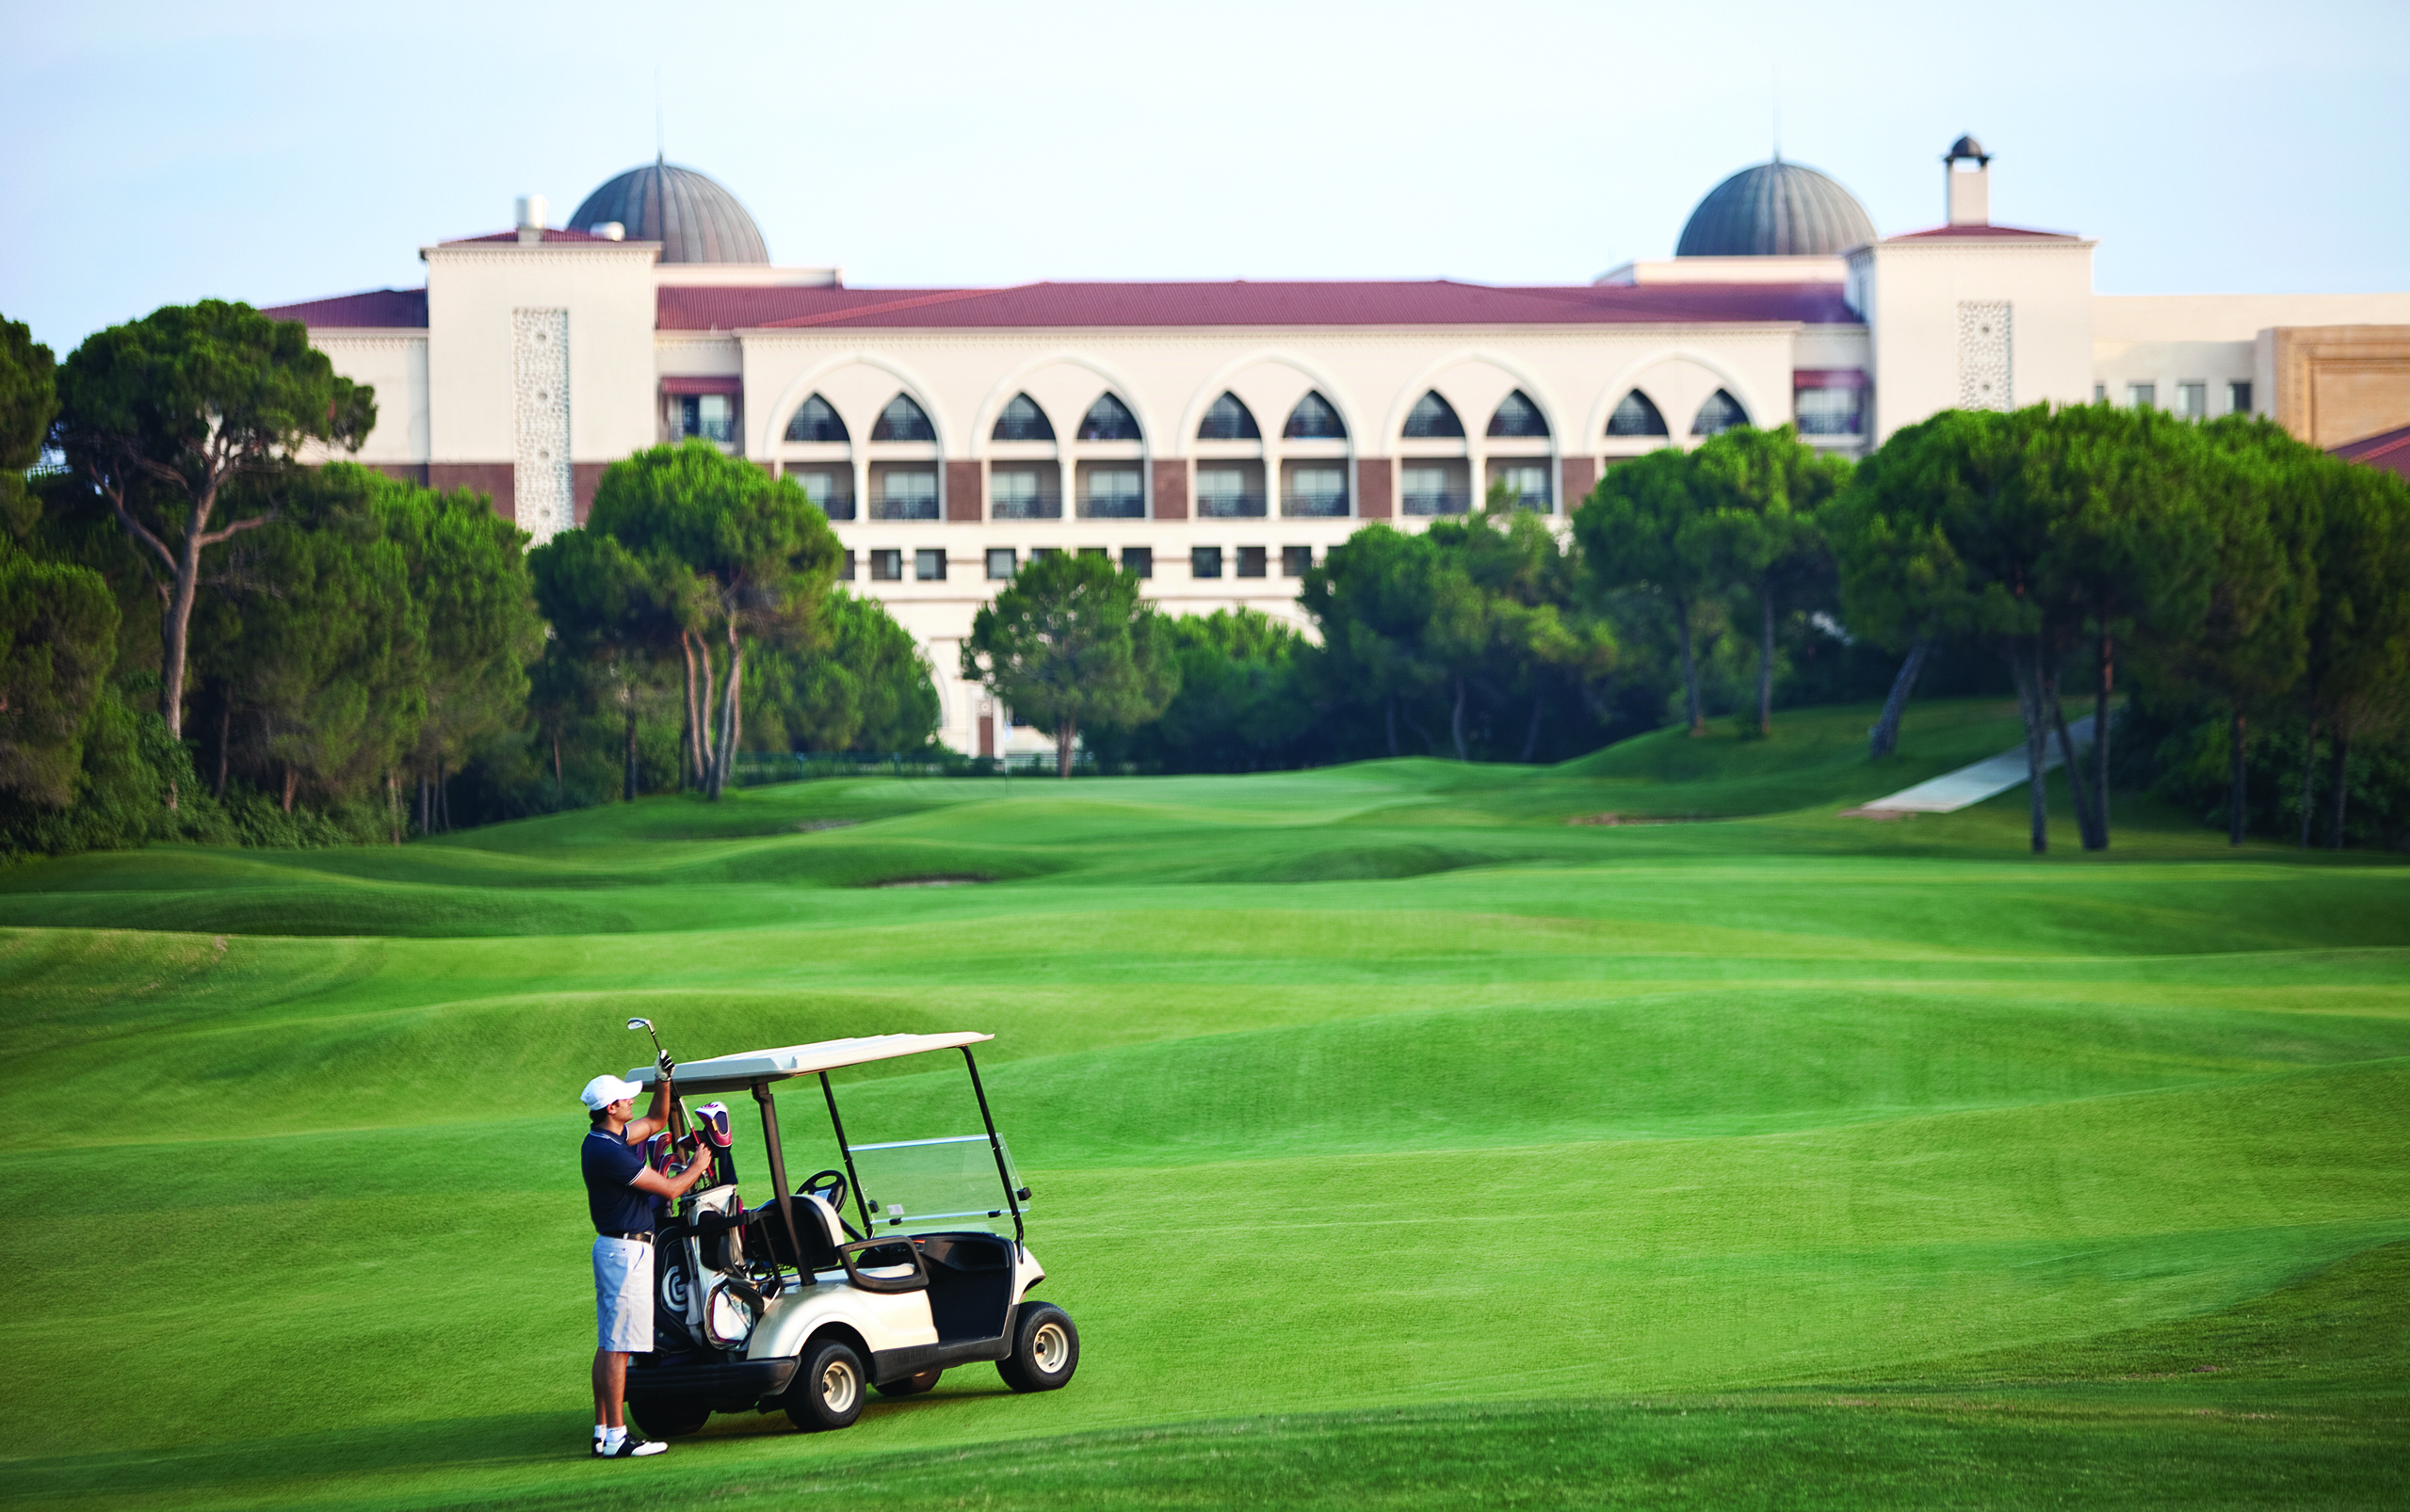 Kempinski Hotel The Dome Belek Turkey - golf